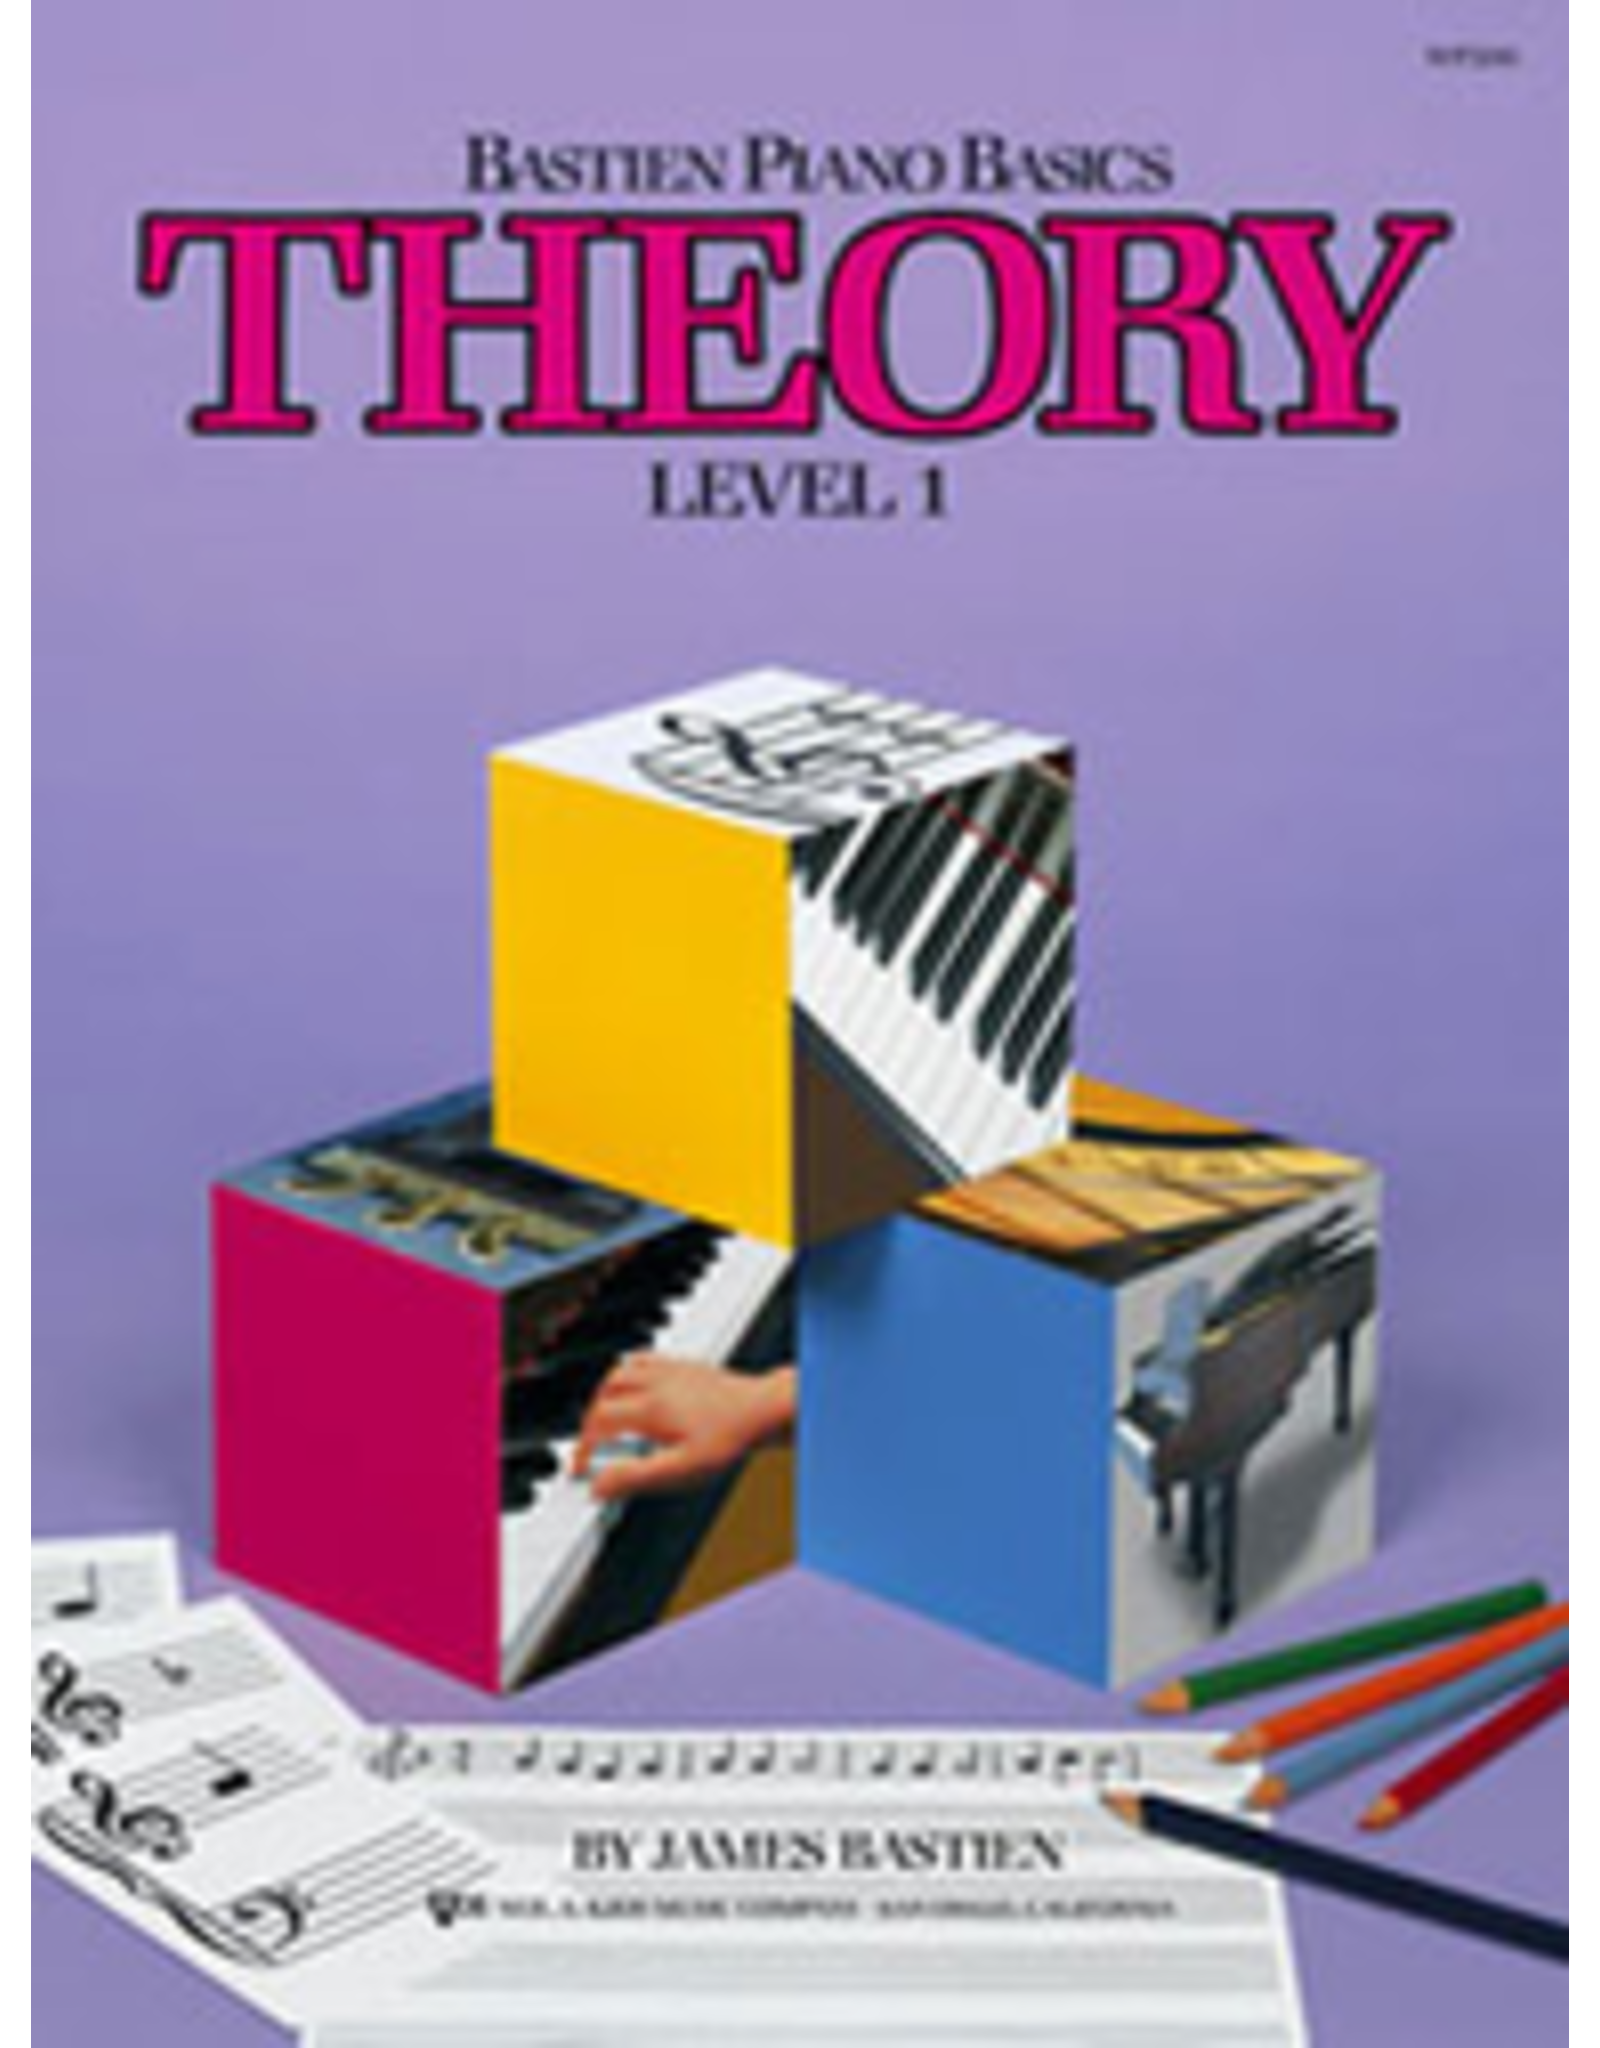 Kjos Bastien Piano Basics, Theory Level 1